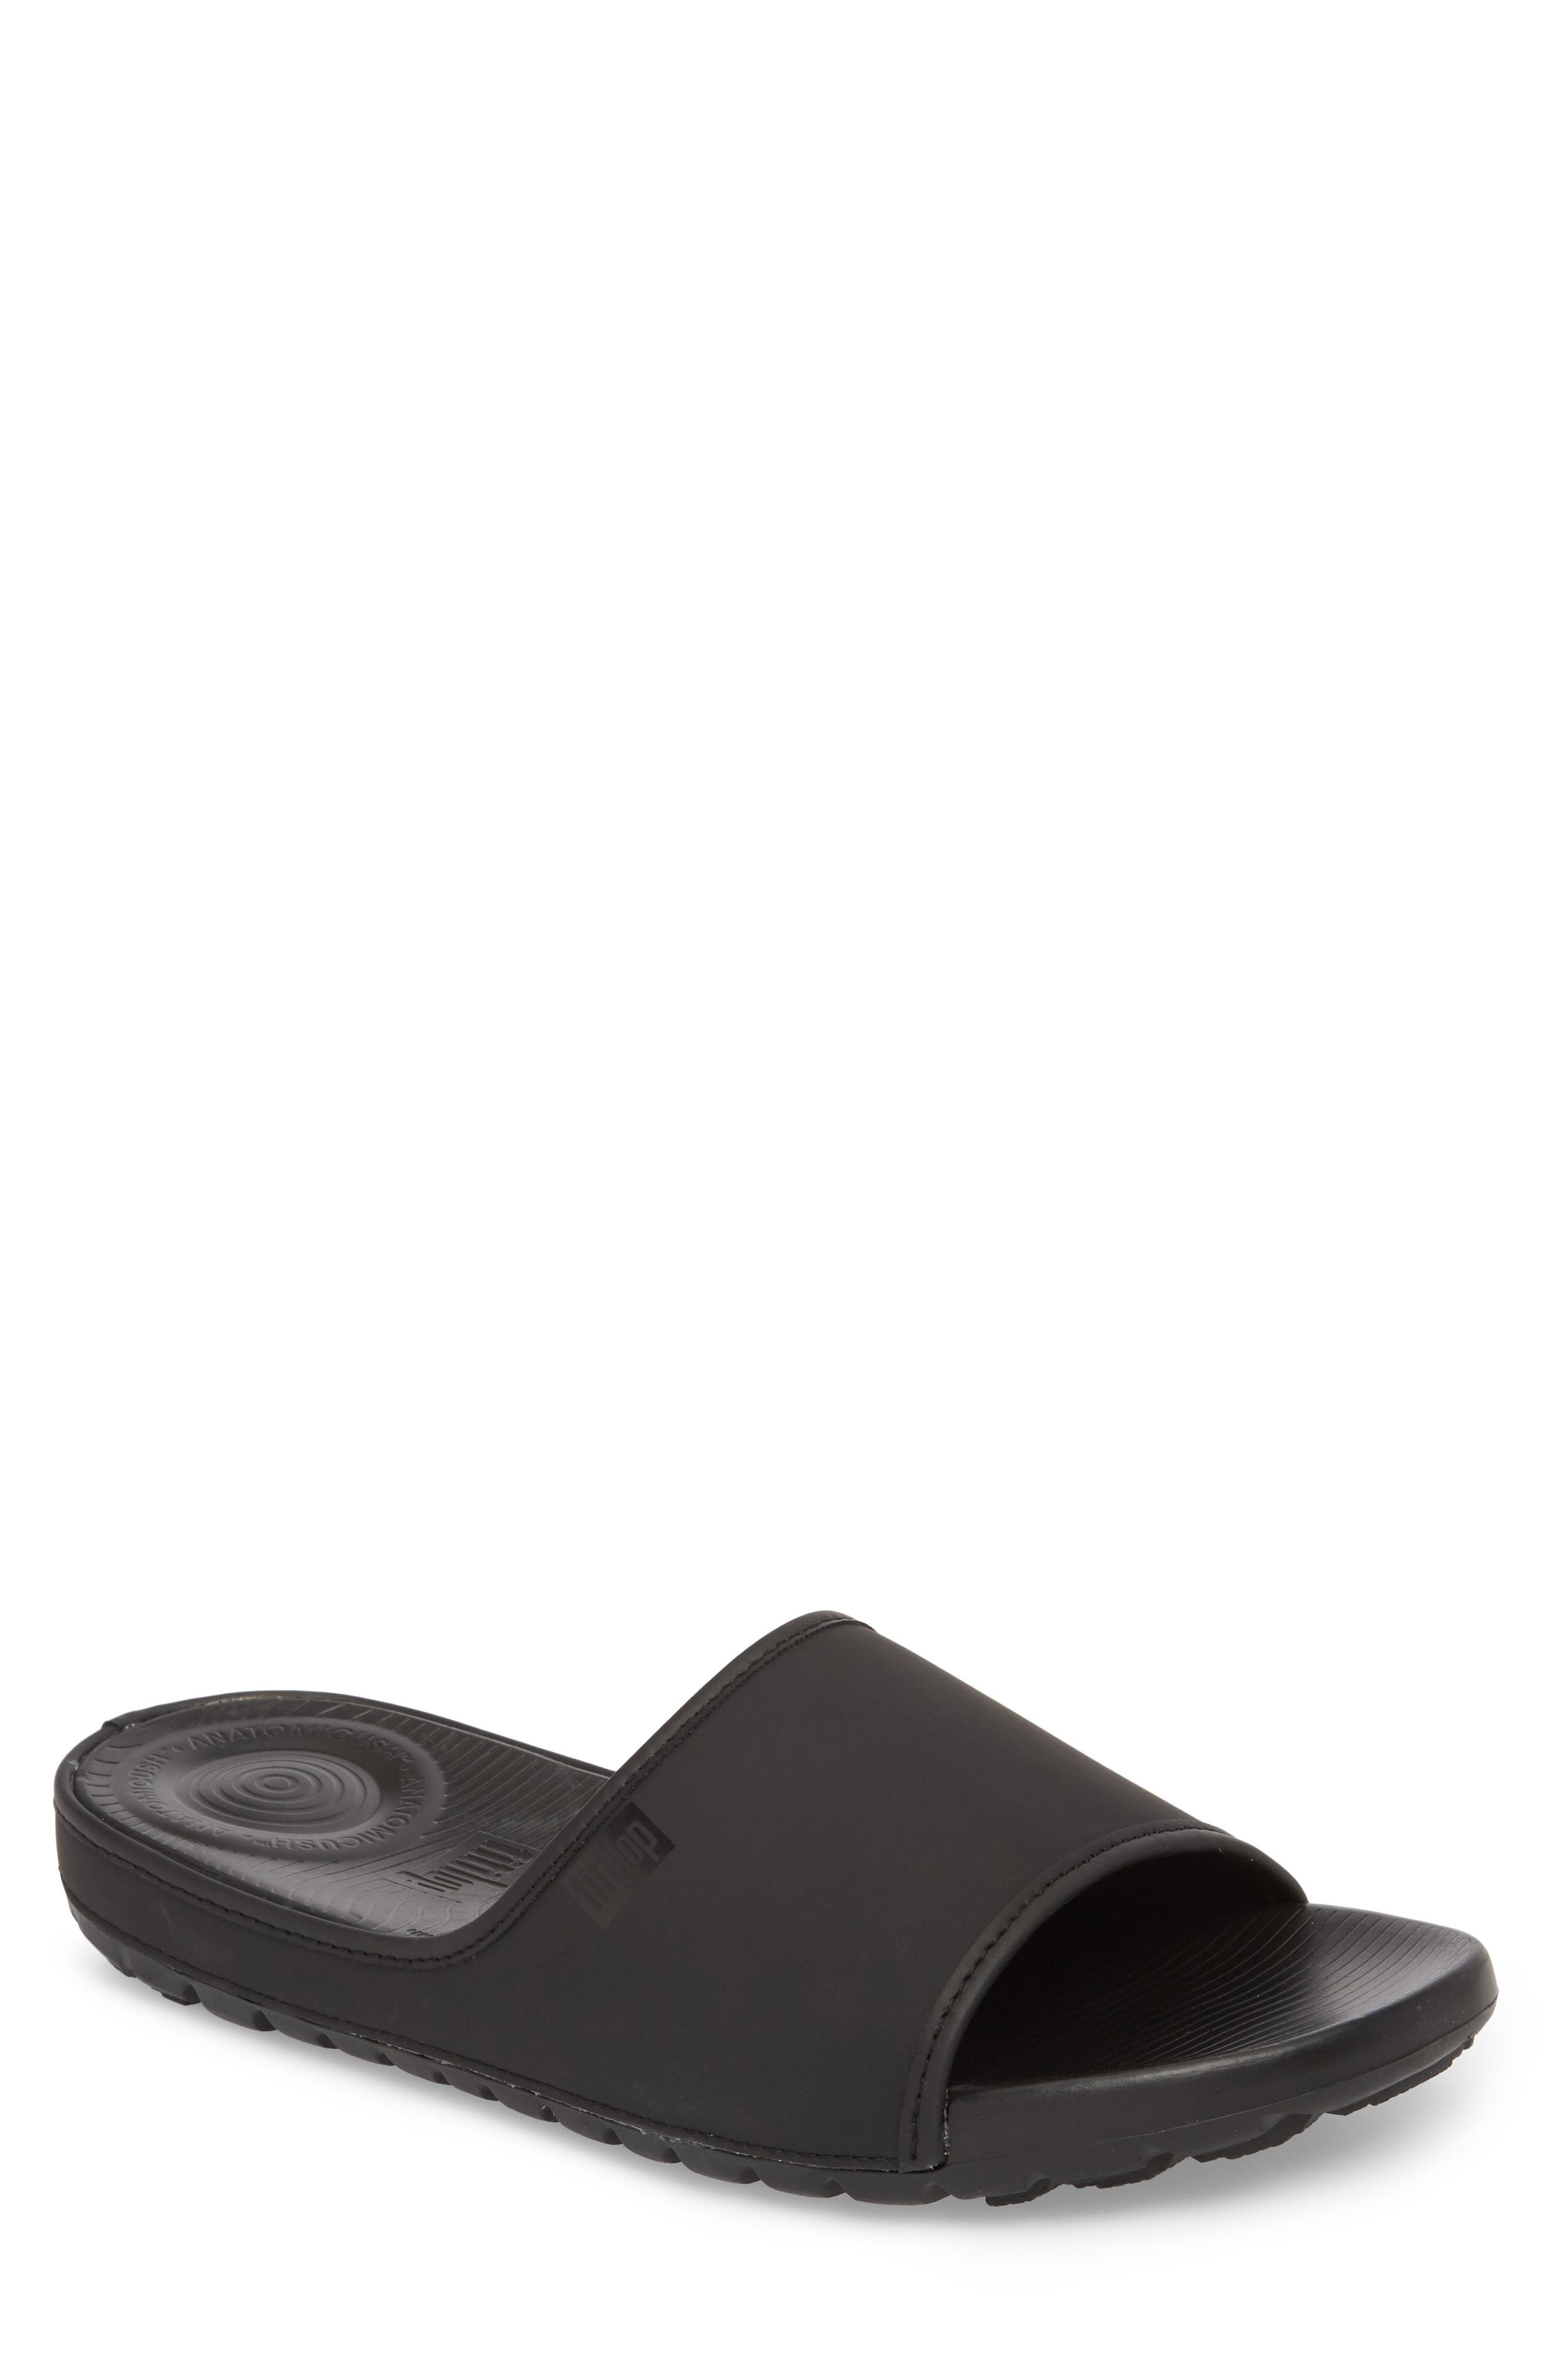 Lido Sport Slide,                         Main,                         color, Black